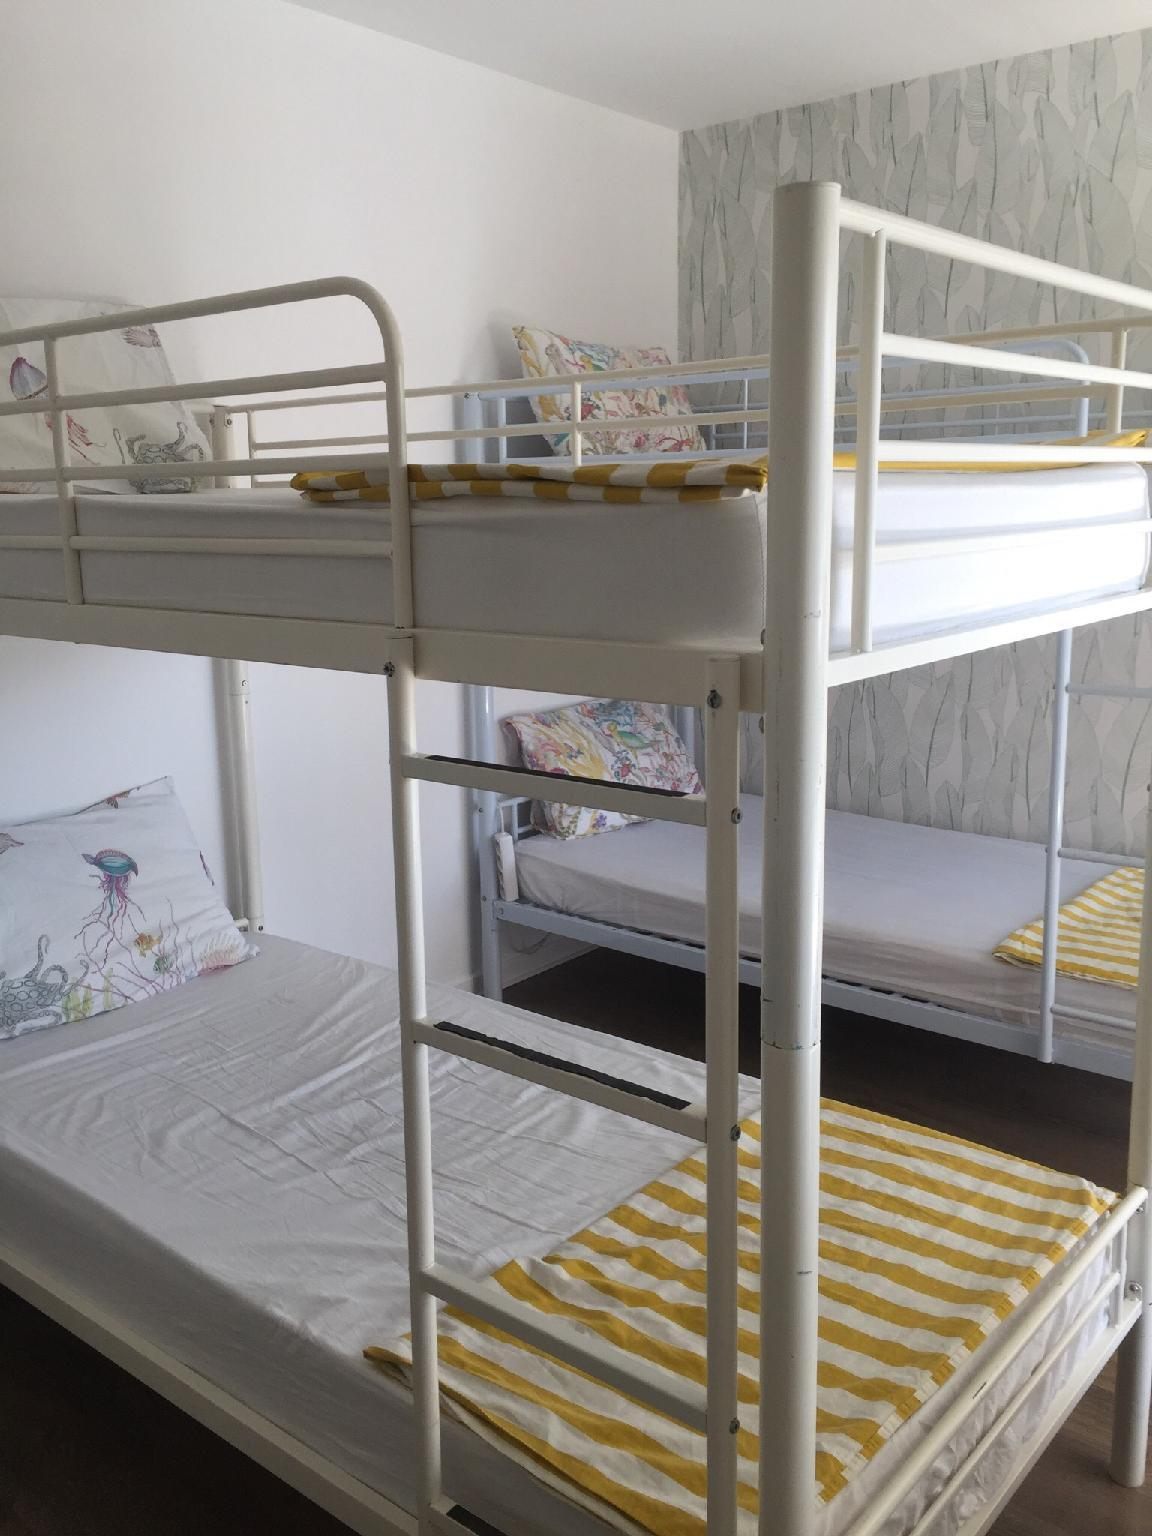 Bed For Sleep Daily 9pm To 10pm - HOMME/MEN ONLY